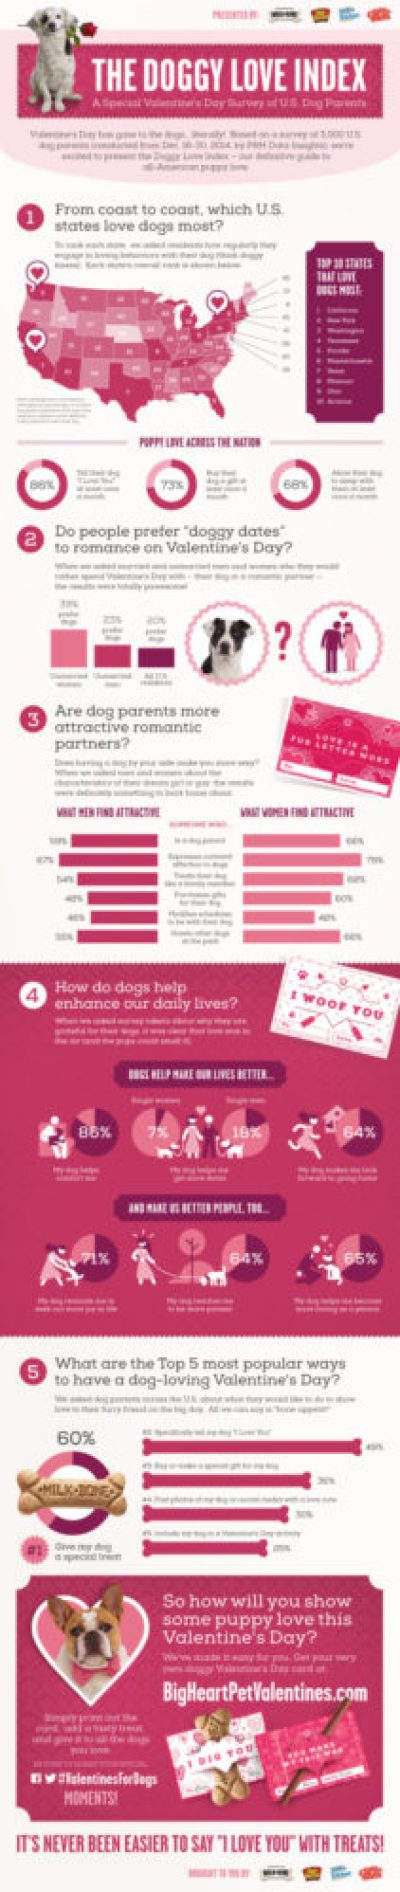 doggylove_infographic_15_national